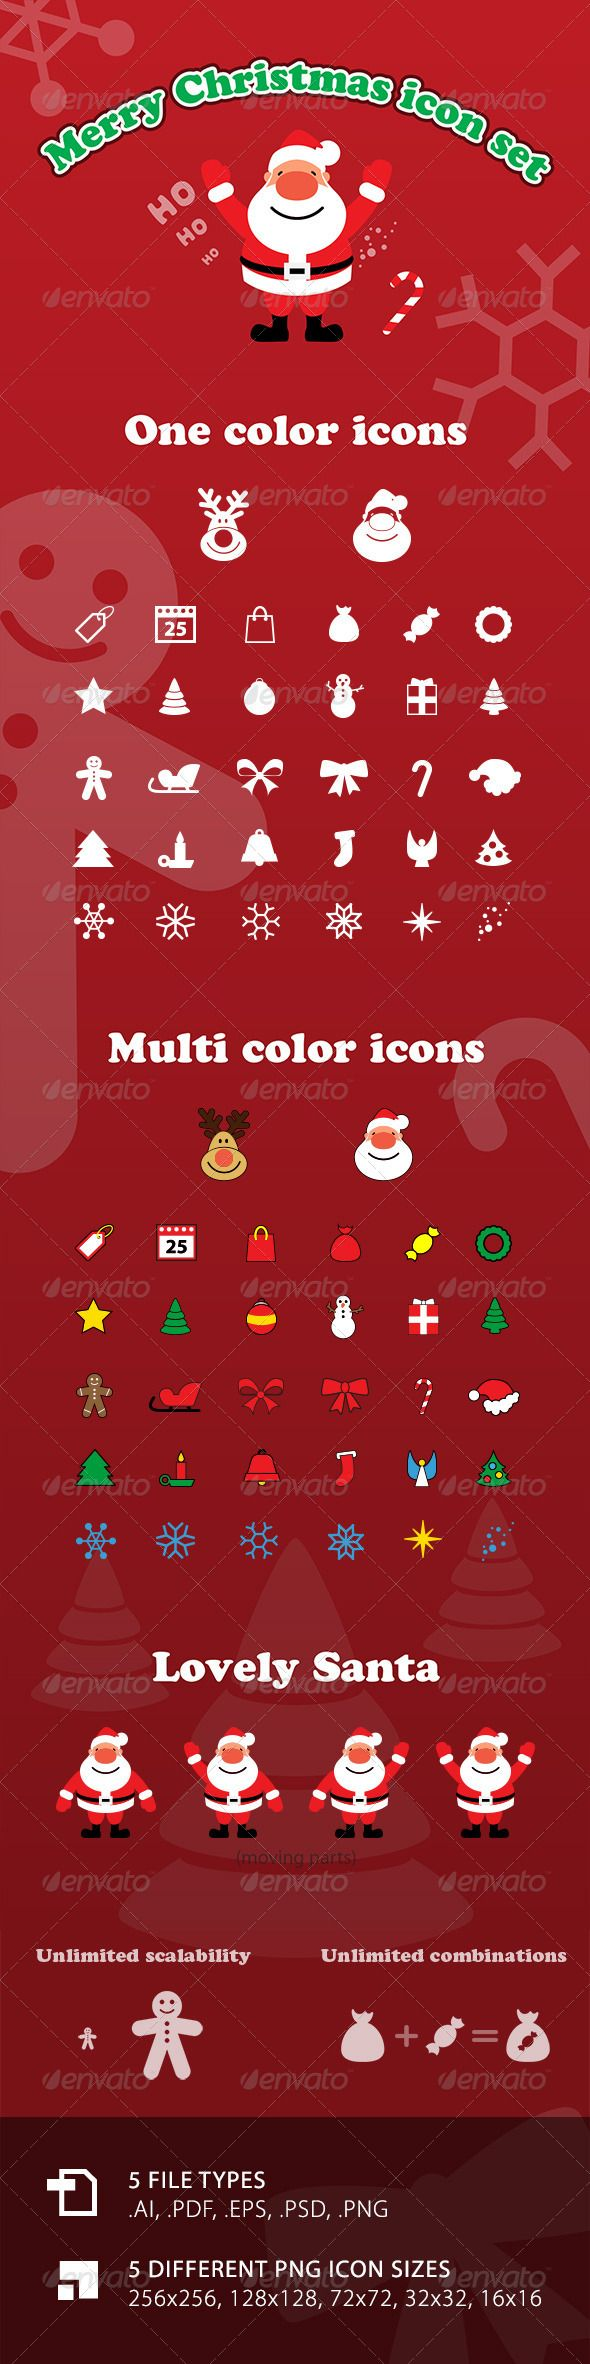 Vector Merry Christmas Icon Set with Santa  #GraphicRiver         32 – One color Christmas icons 32 – Multi color Christmas icons 4 – Types of lovely Santa with moving parts (head, body, arms, legs) Unlimited scalability, usability and combinations   5 file types .AI, .PDF, .EPS, .PSD, .PNG 5 different PNG icon sizes 256×256, 128×128, 72×72, 32×32, 16×16   All icons are made at high quality standard and a lot of love.   Icons: Reindeer – Santa – Tag – 25 – Bag – Santa bag – Candy – Advent…